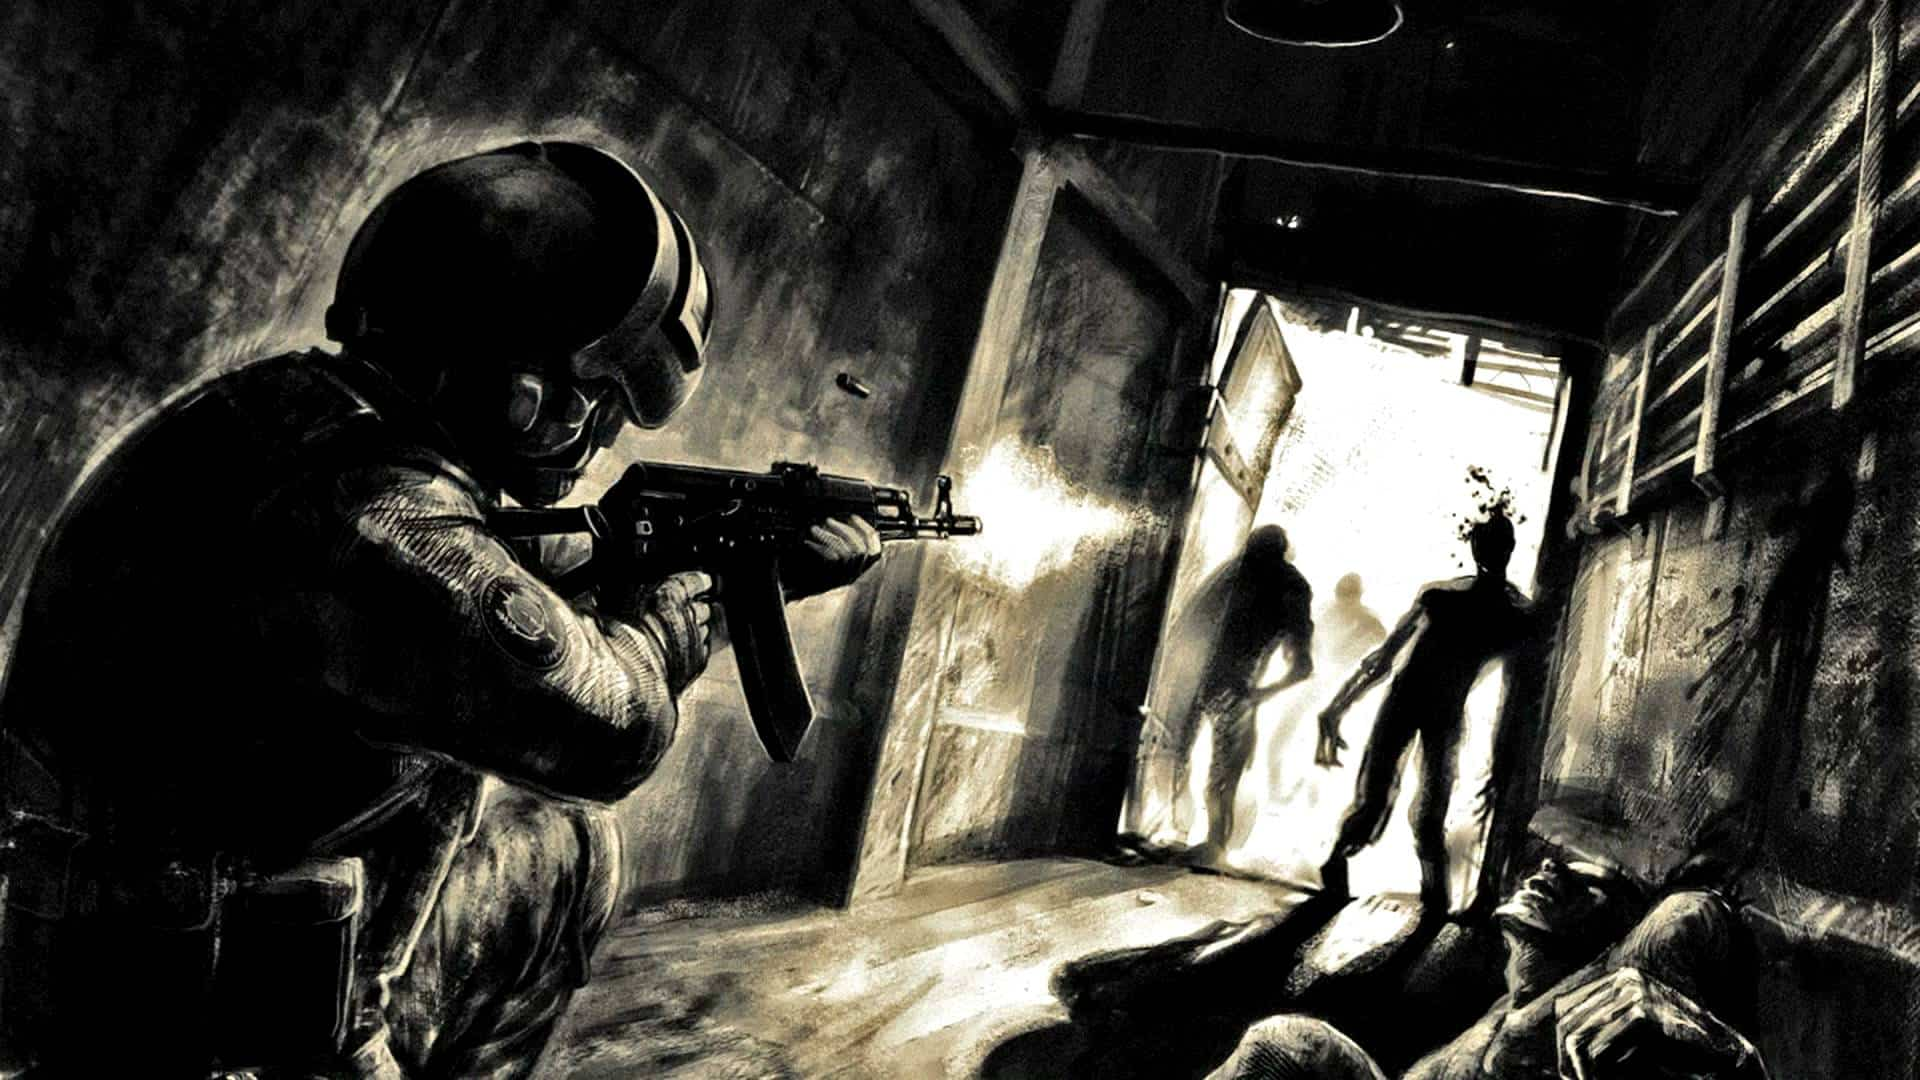 Counter-strike 1.6 download | Counter-strike hd wallpapers ...